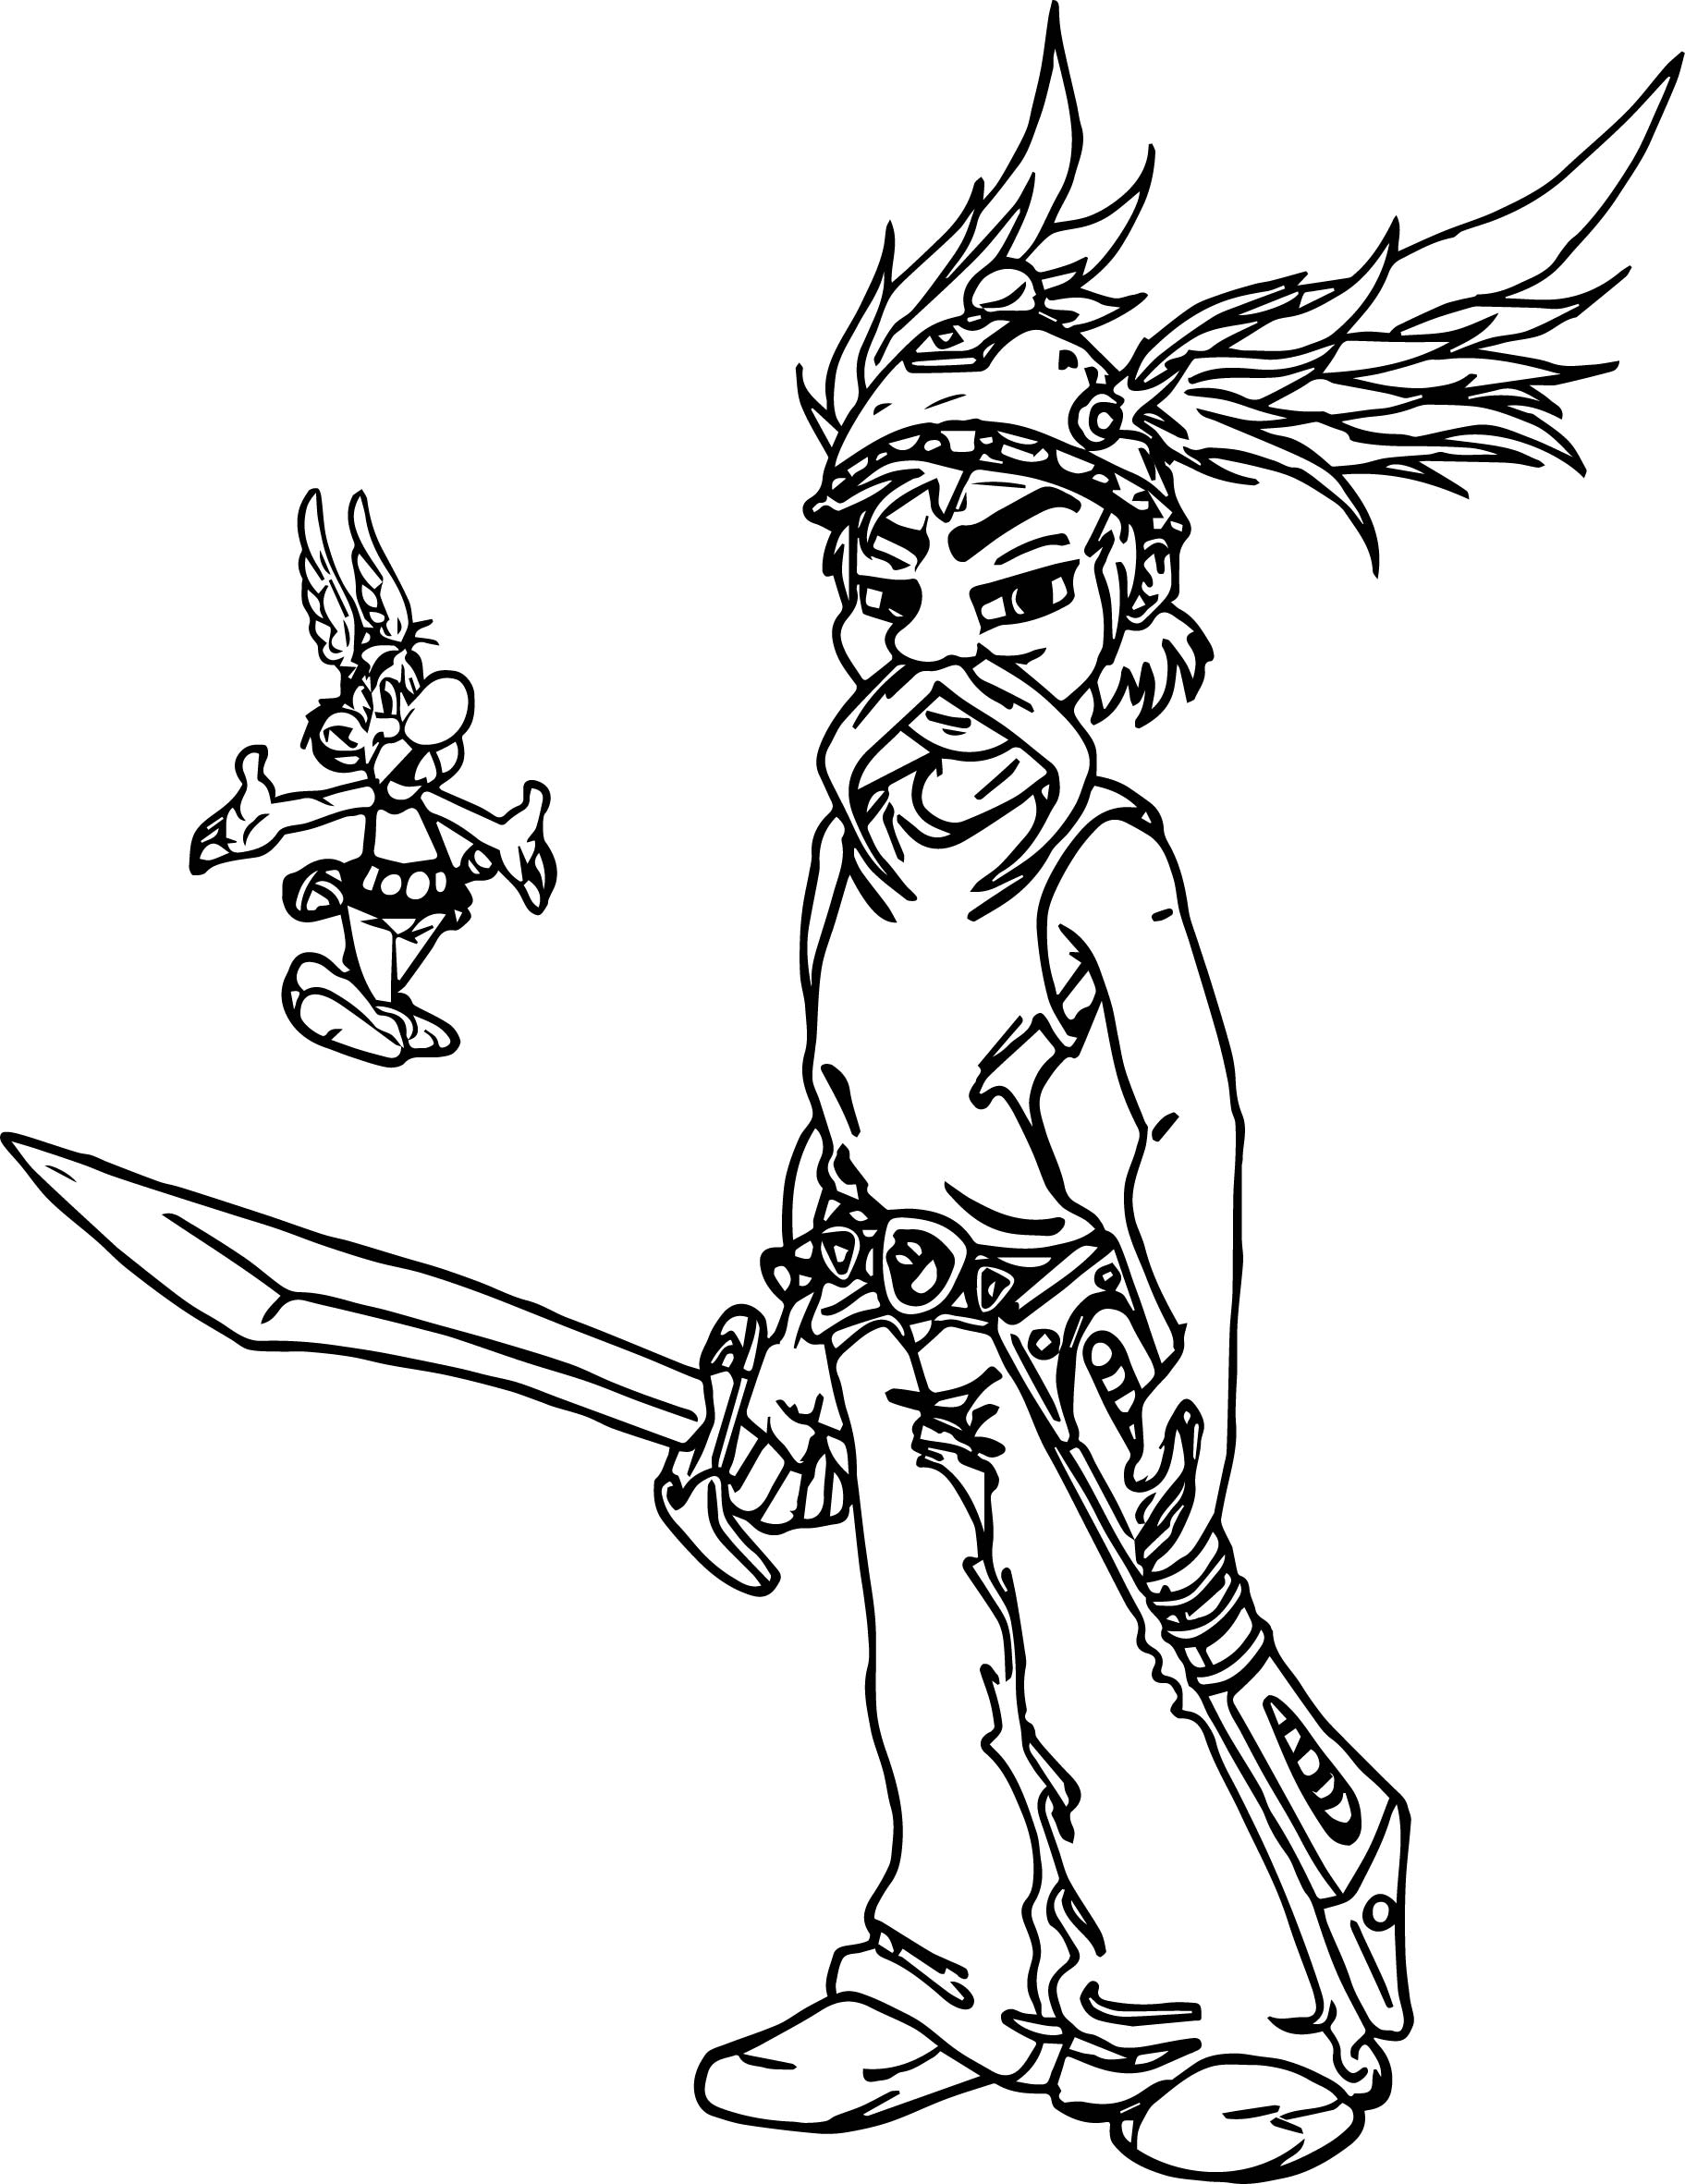 Human Evolution Coloring Pages Coloring Pages